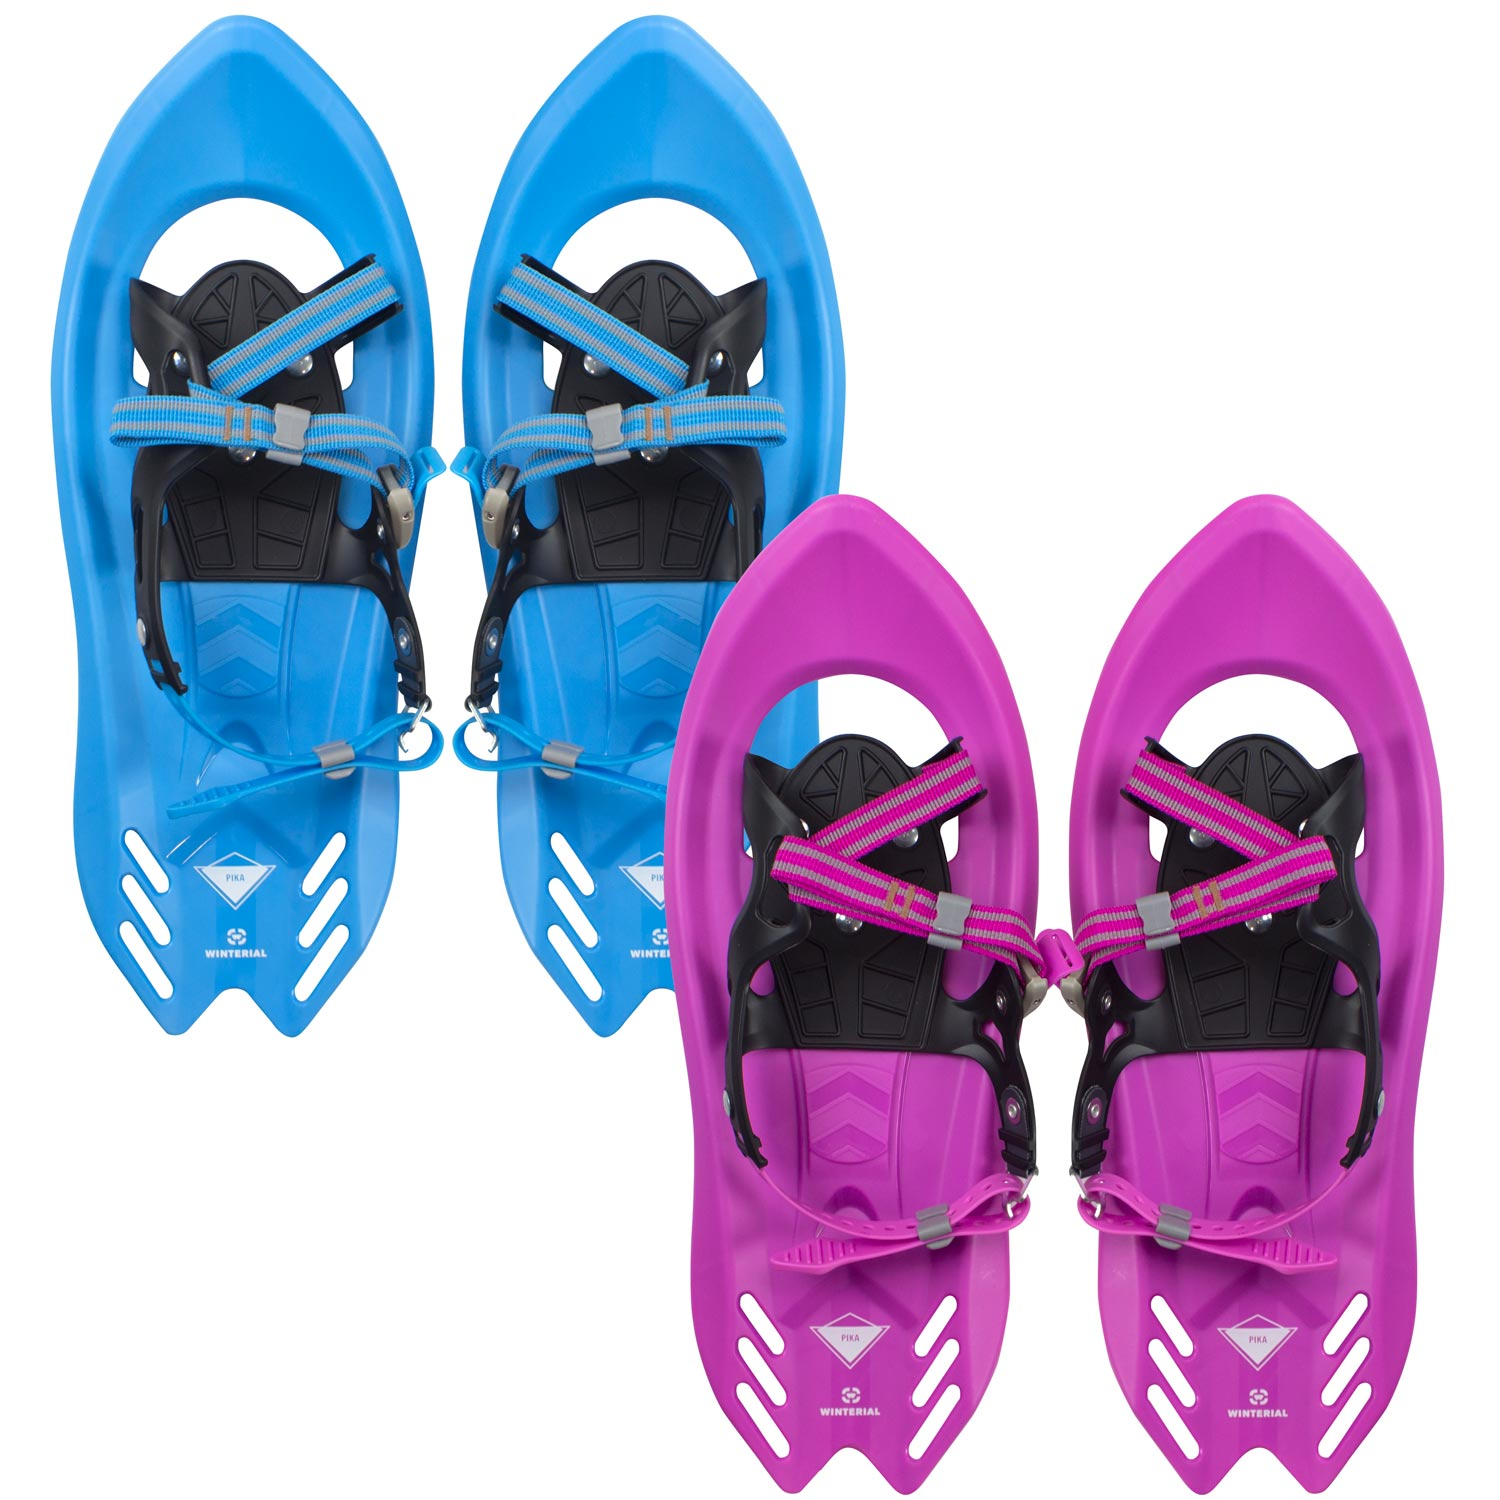 Winterial Pika Kids Snowshoes   Snowshoes   Kids   Snowshoeing   Youth Snowshoes   Flat Terrain Snowshoes by Winterial